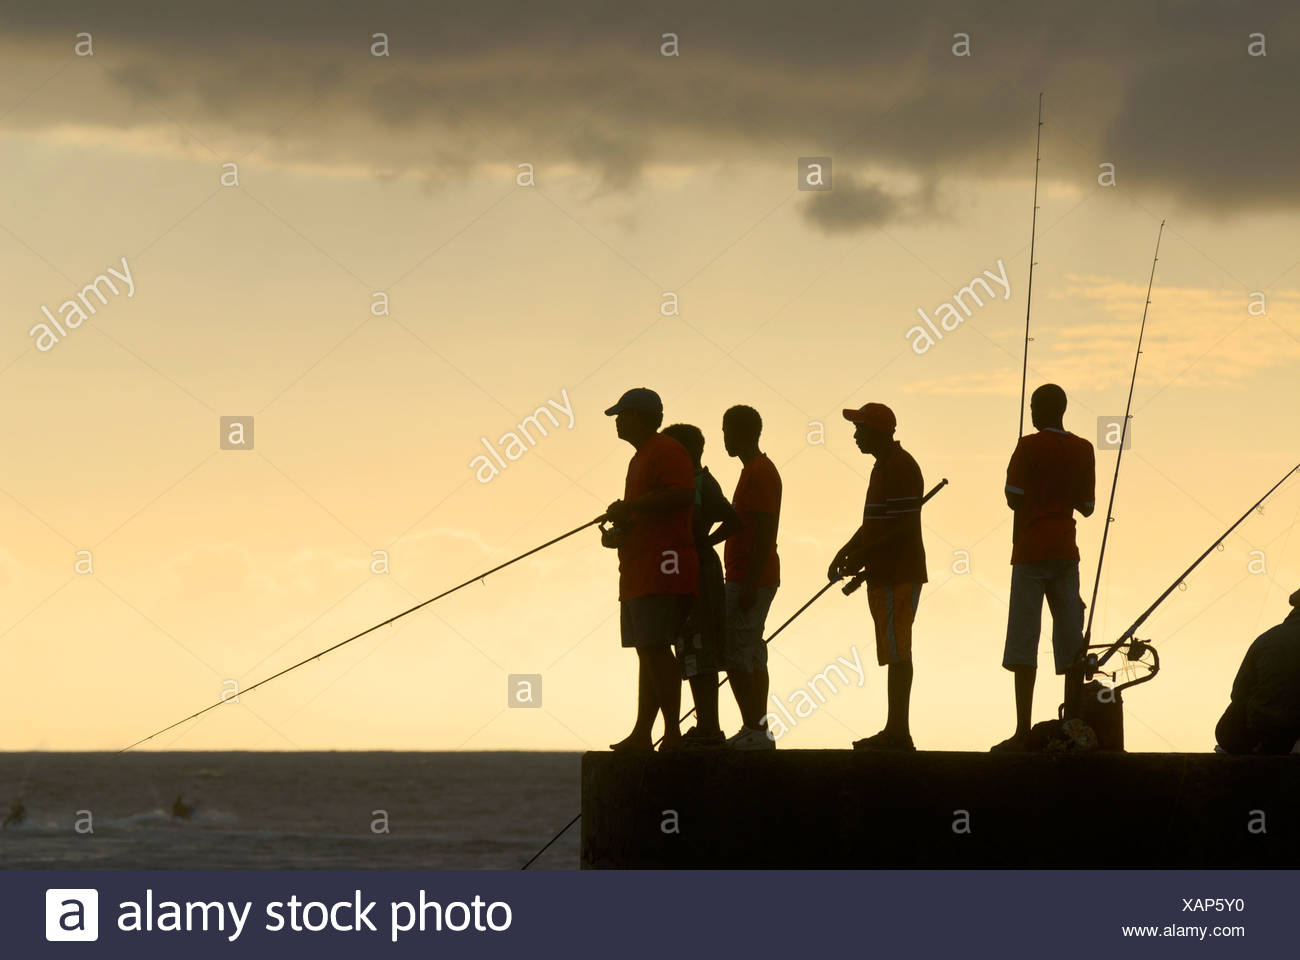 Silhouettes of recreational anglers on the pier of St. Gilles de Baines, La Reunion, Indian Ocean - Stock Image